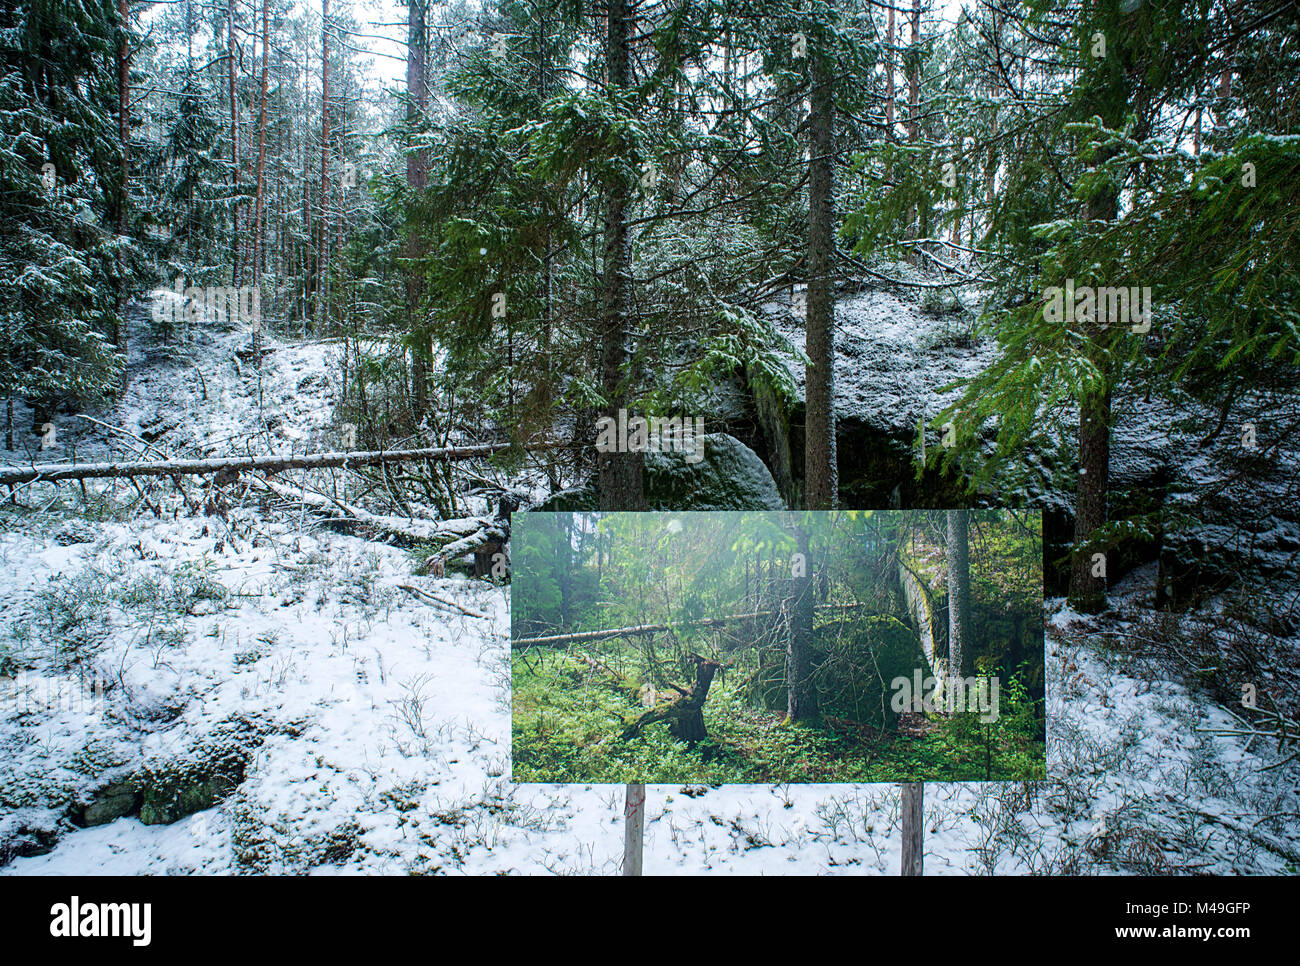 Landscape through changing seasons - photograph by Pal Hermansen 'The passage of time' of the same woodland - Stock Image